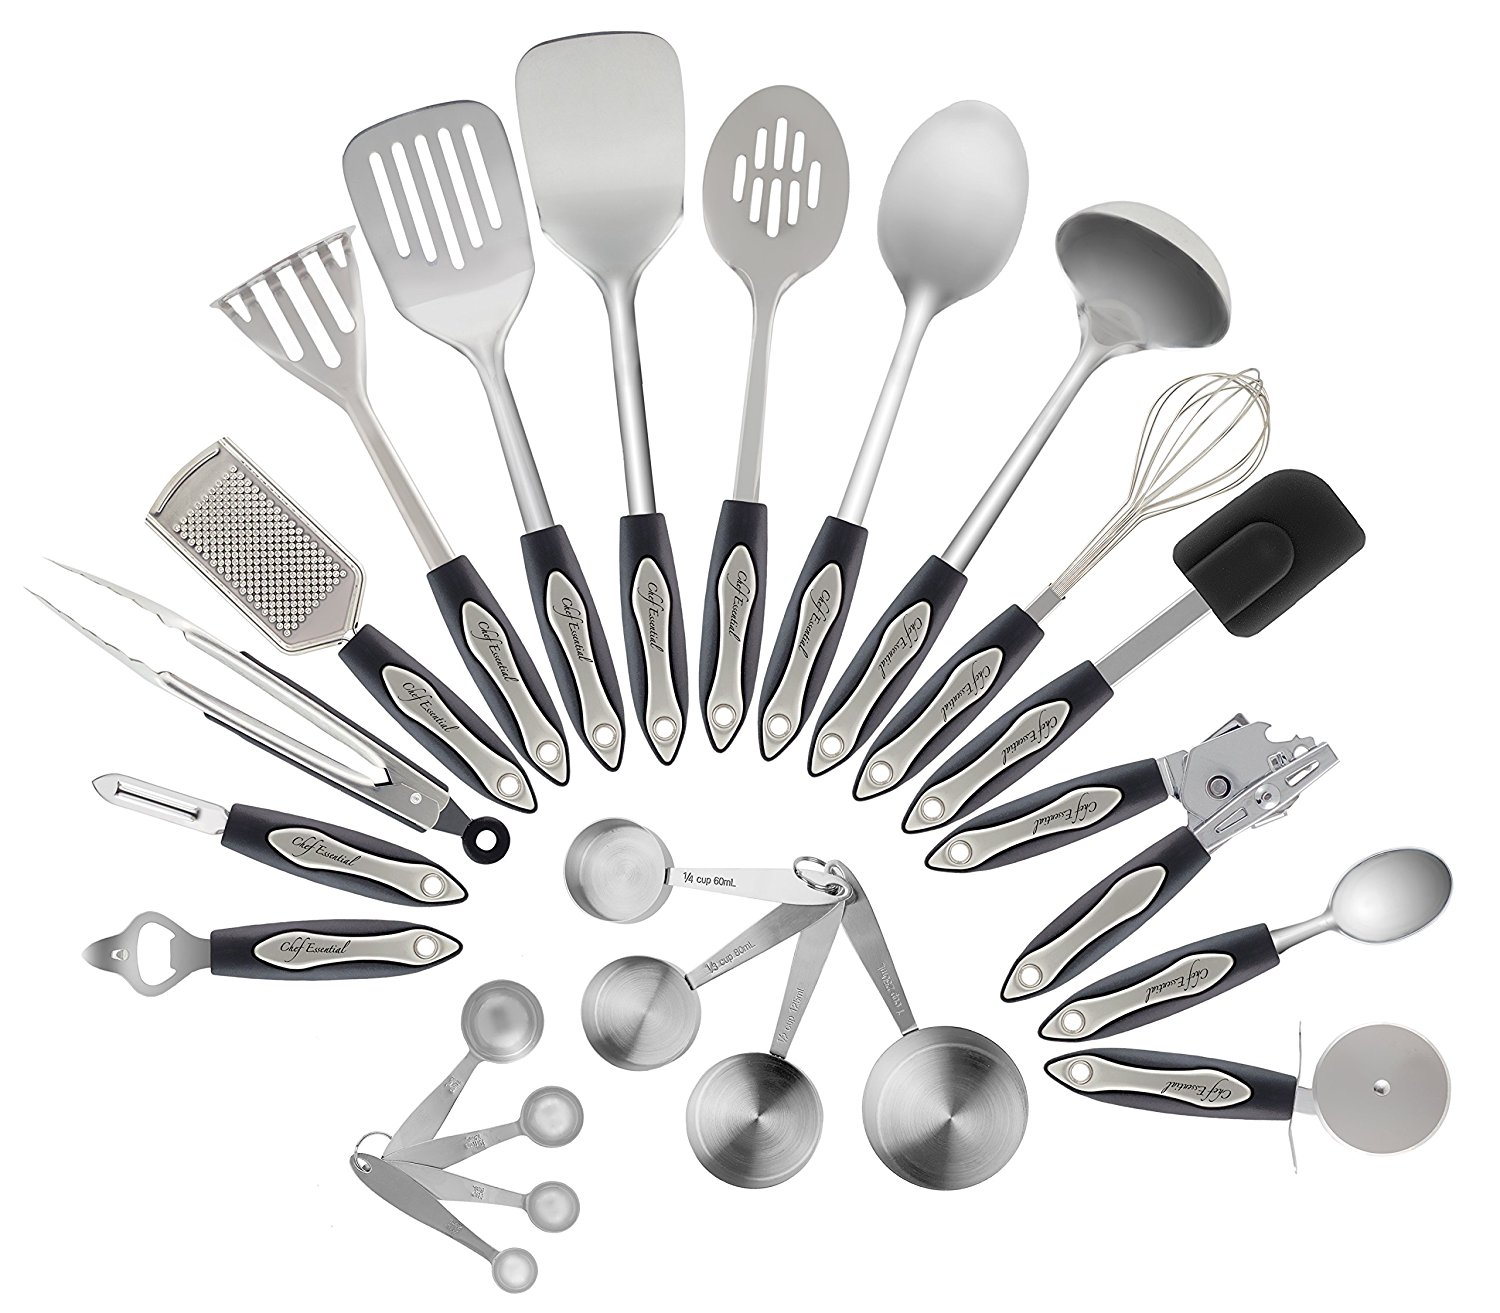 Stainless Steel Kitchen Utensils Set 23 Pc